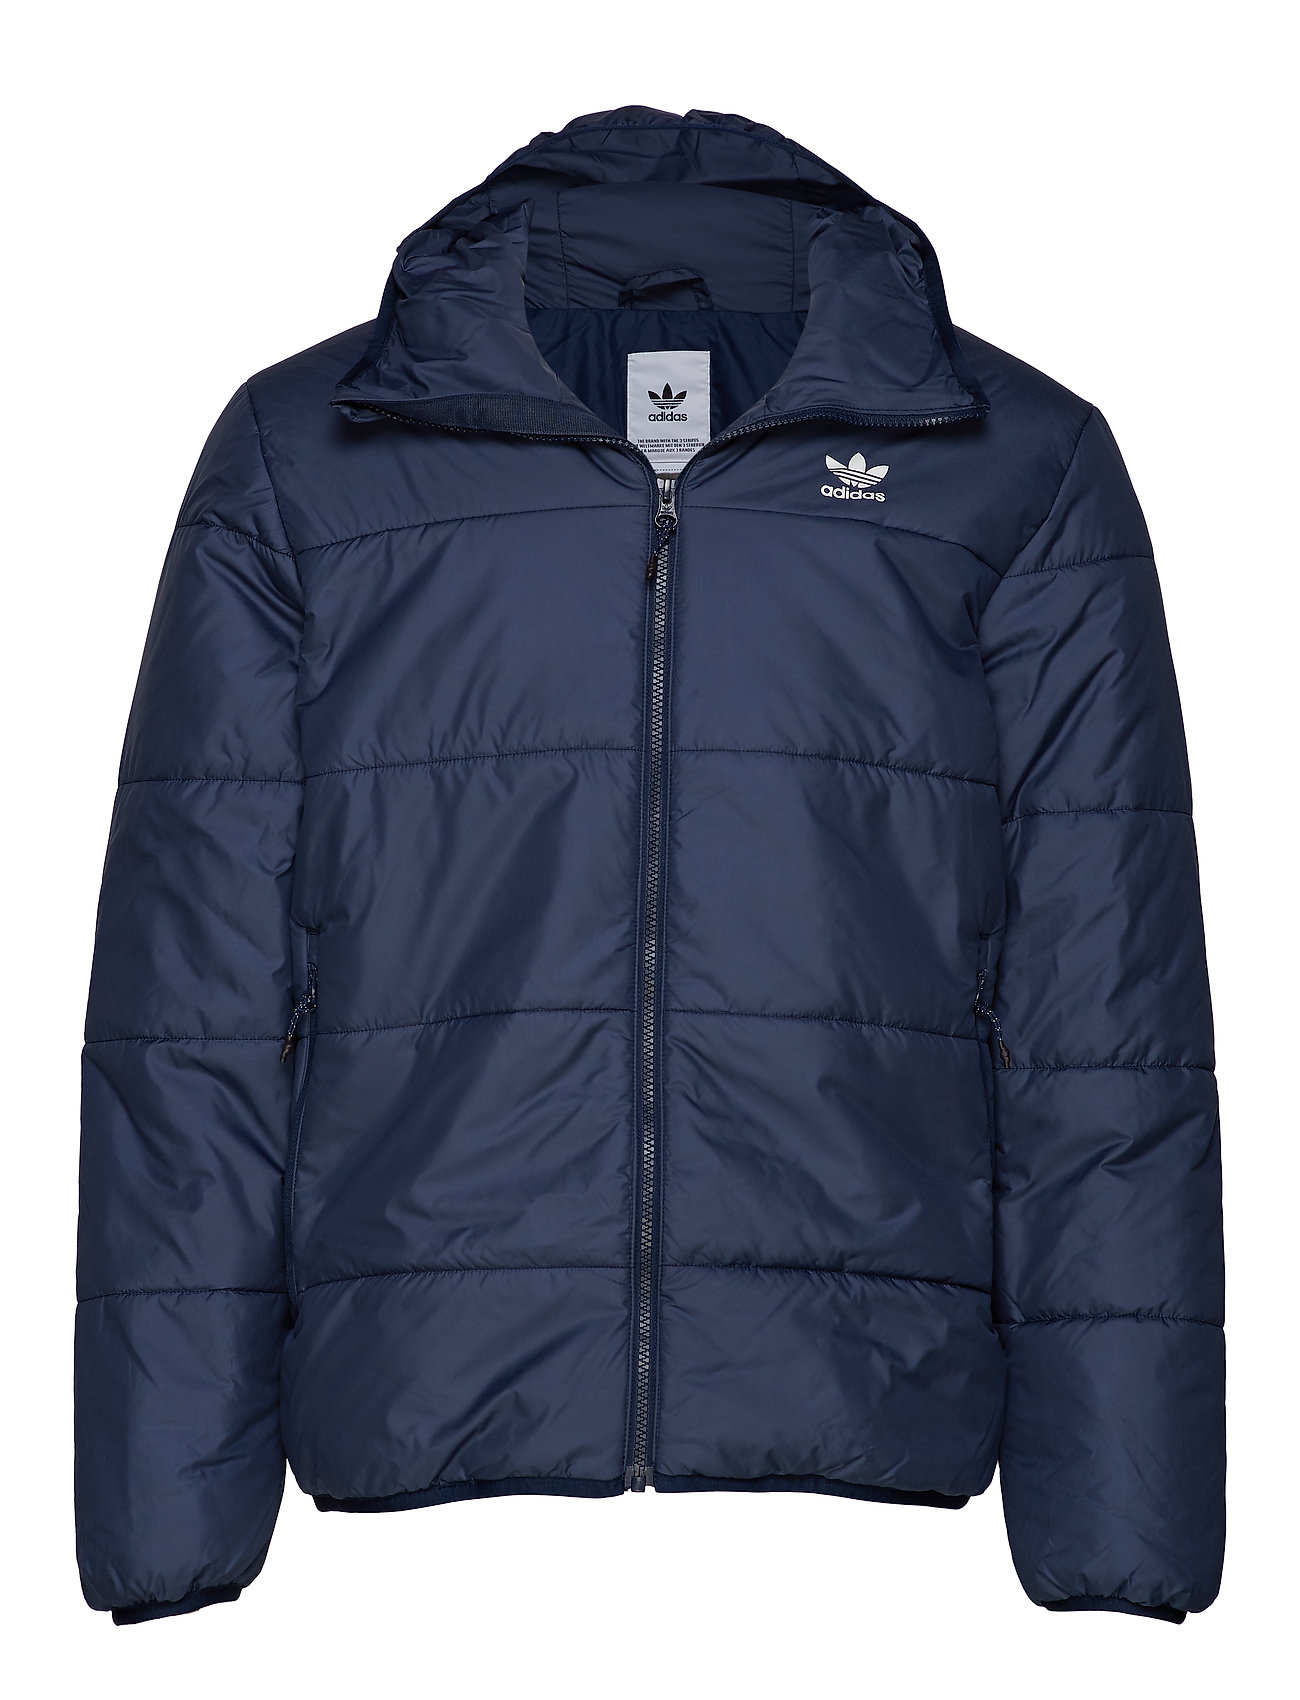 adidas Originals JACKET PADDED - CONAVY